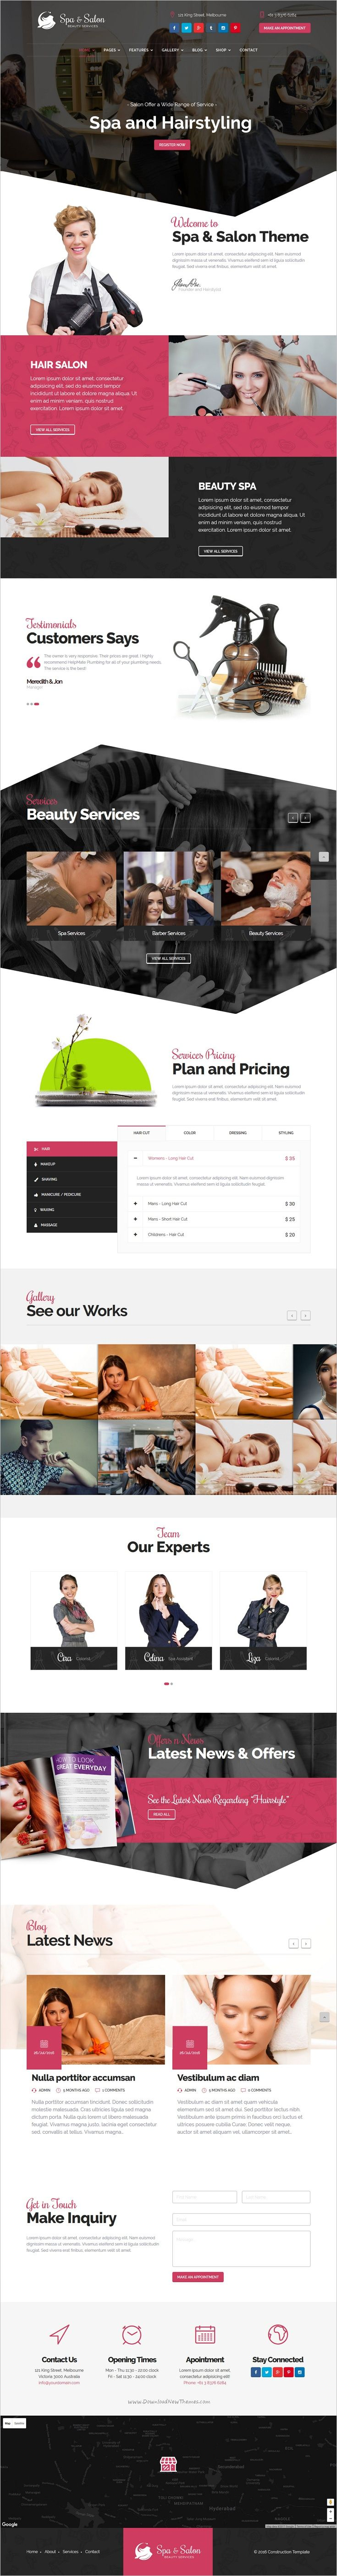 Beautiuflly design one and multi-page responsive #WordPress theme for #beauty #salon and construction service websites download now➩ https://themeforest.net/item/beauty-salon-construction-services-wordpress-theme/18942865?ref=Datasata